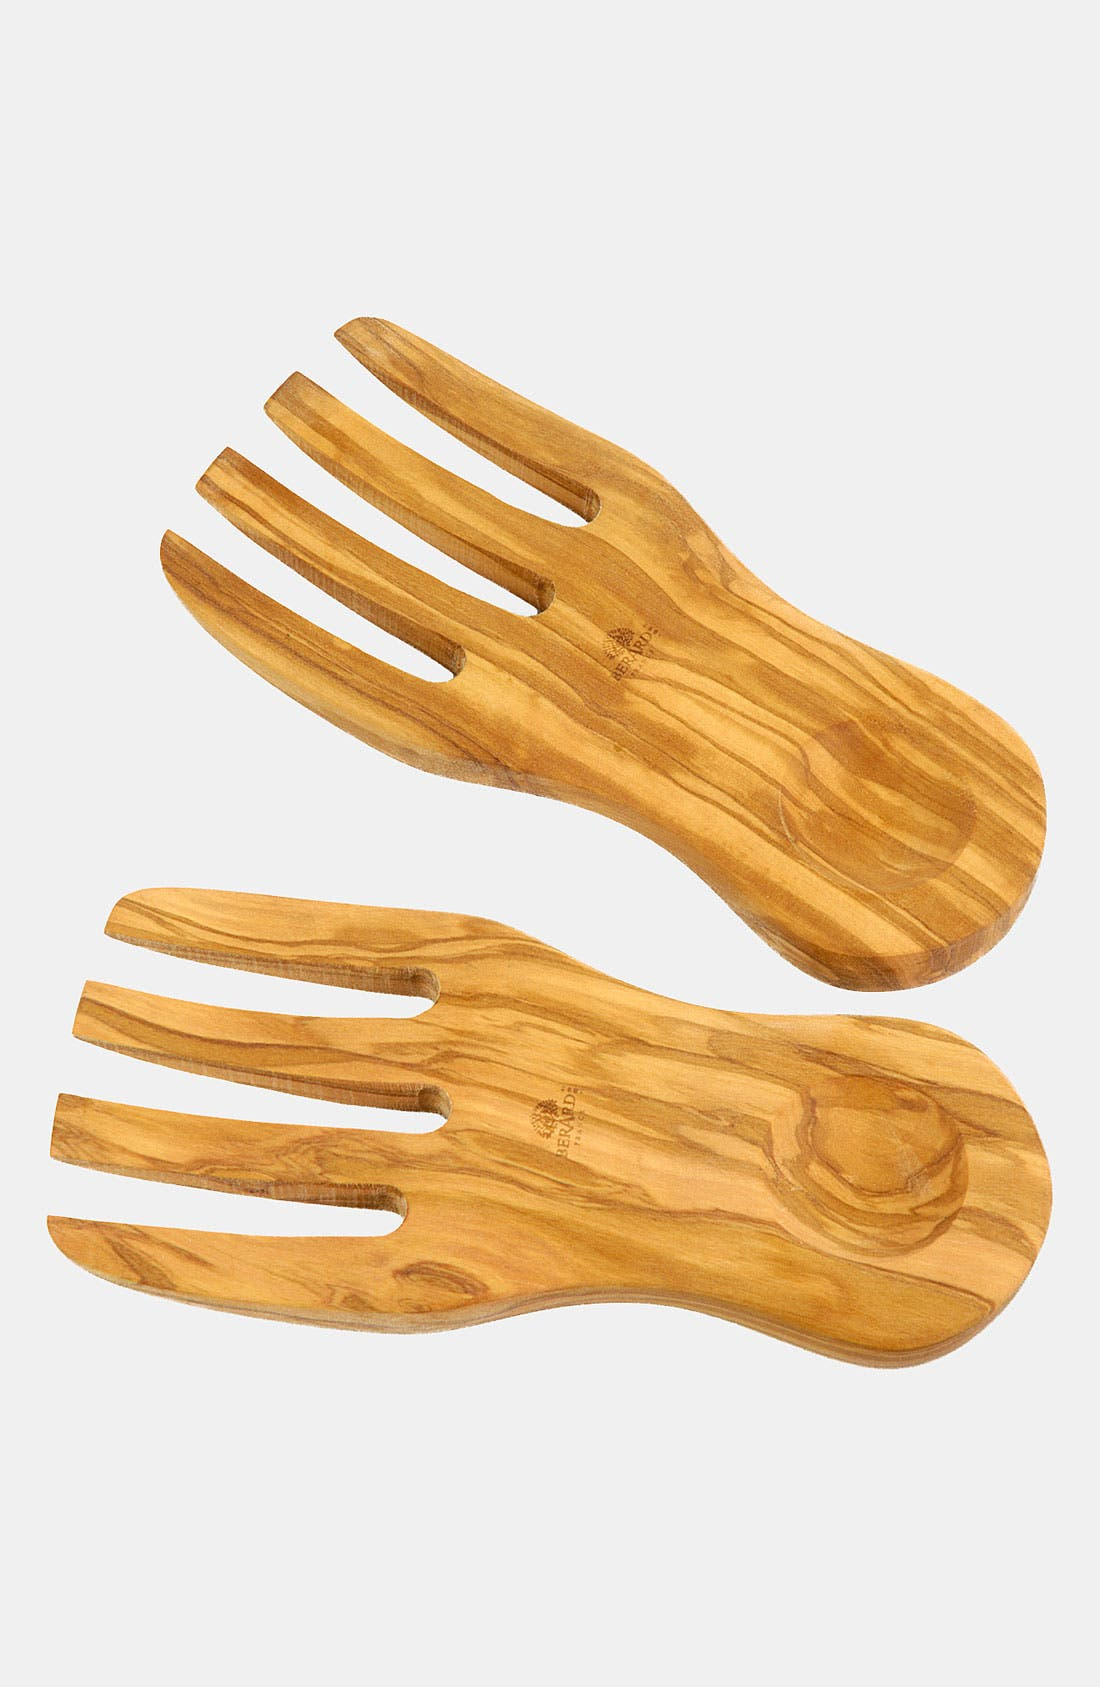 Alternate Image 1 Selected - Bérard 'Hands' Servers (Set of 2)